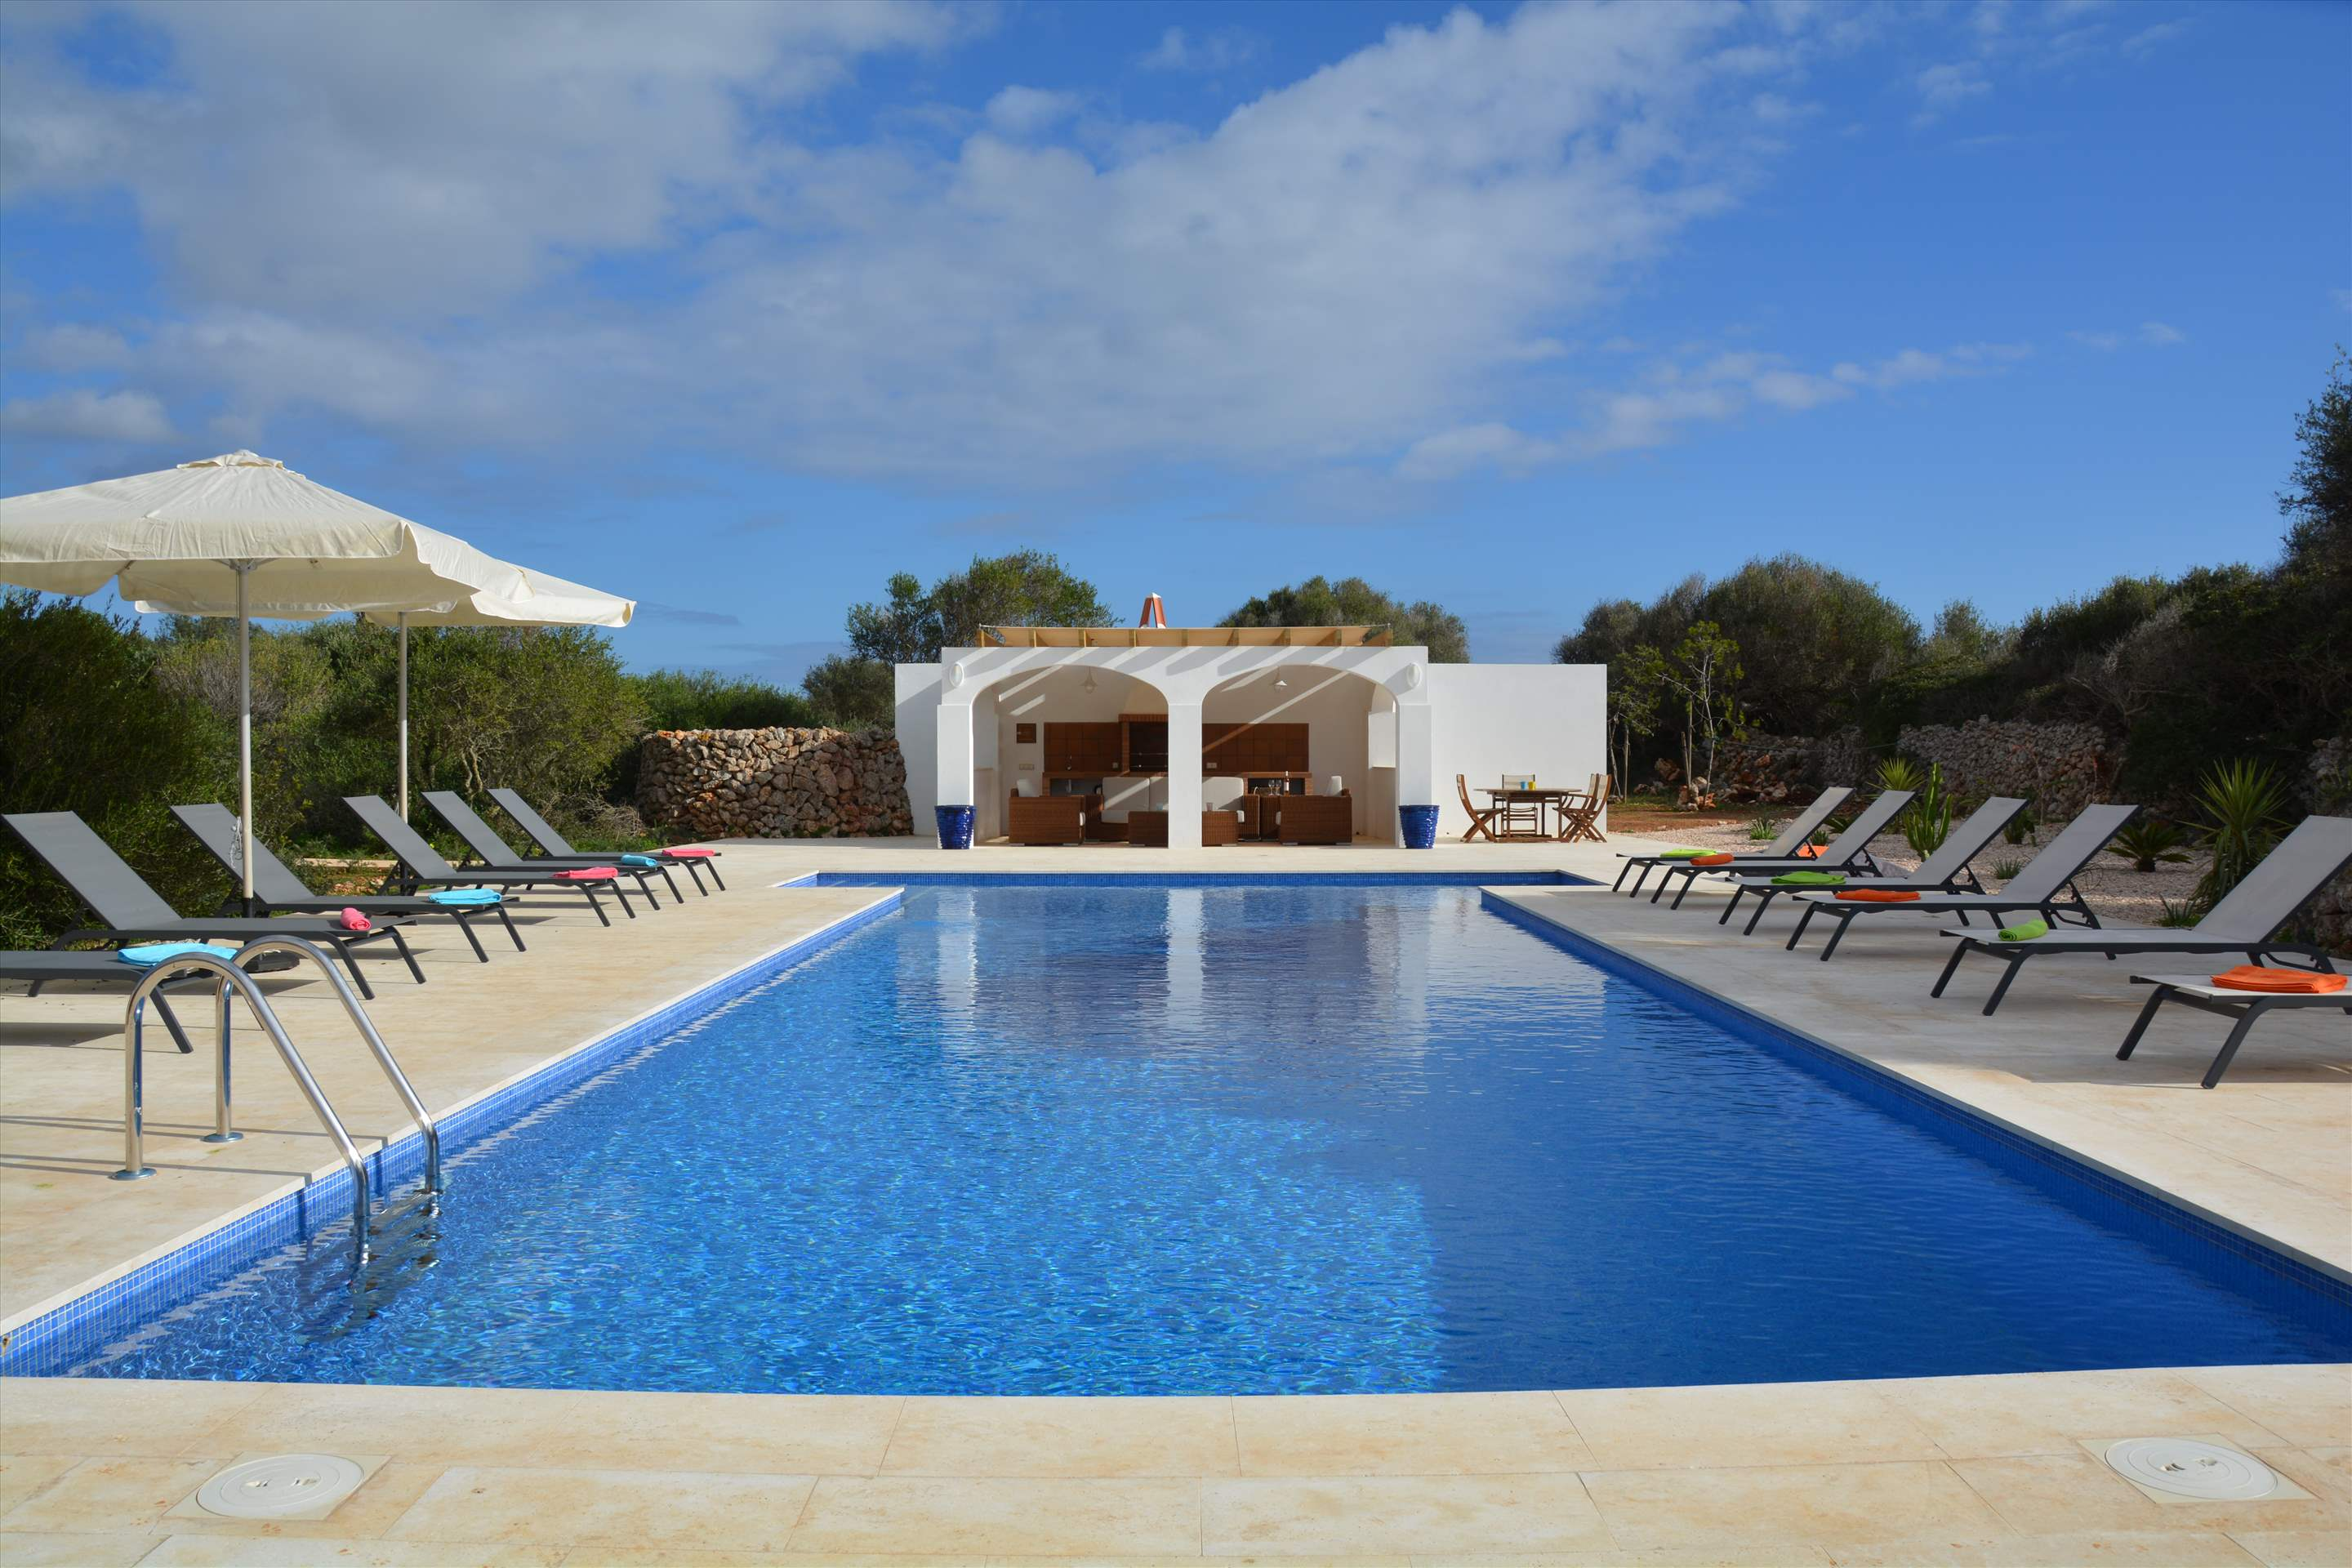 Les Arcs, 5 bedroom villa in Mahon, San Luis & South East, Menorca